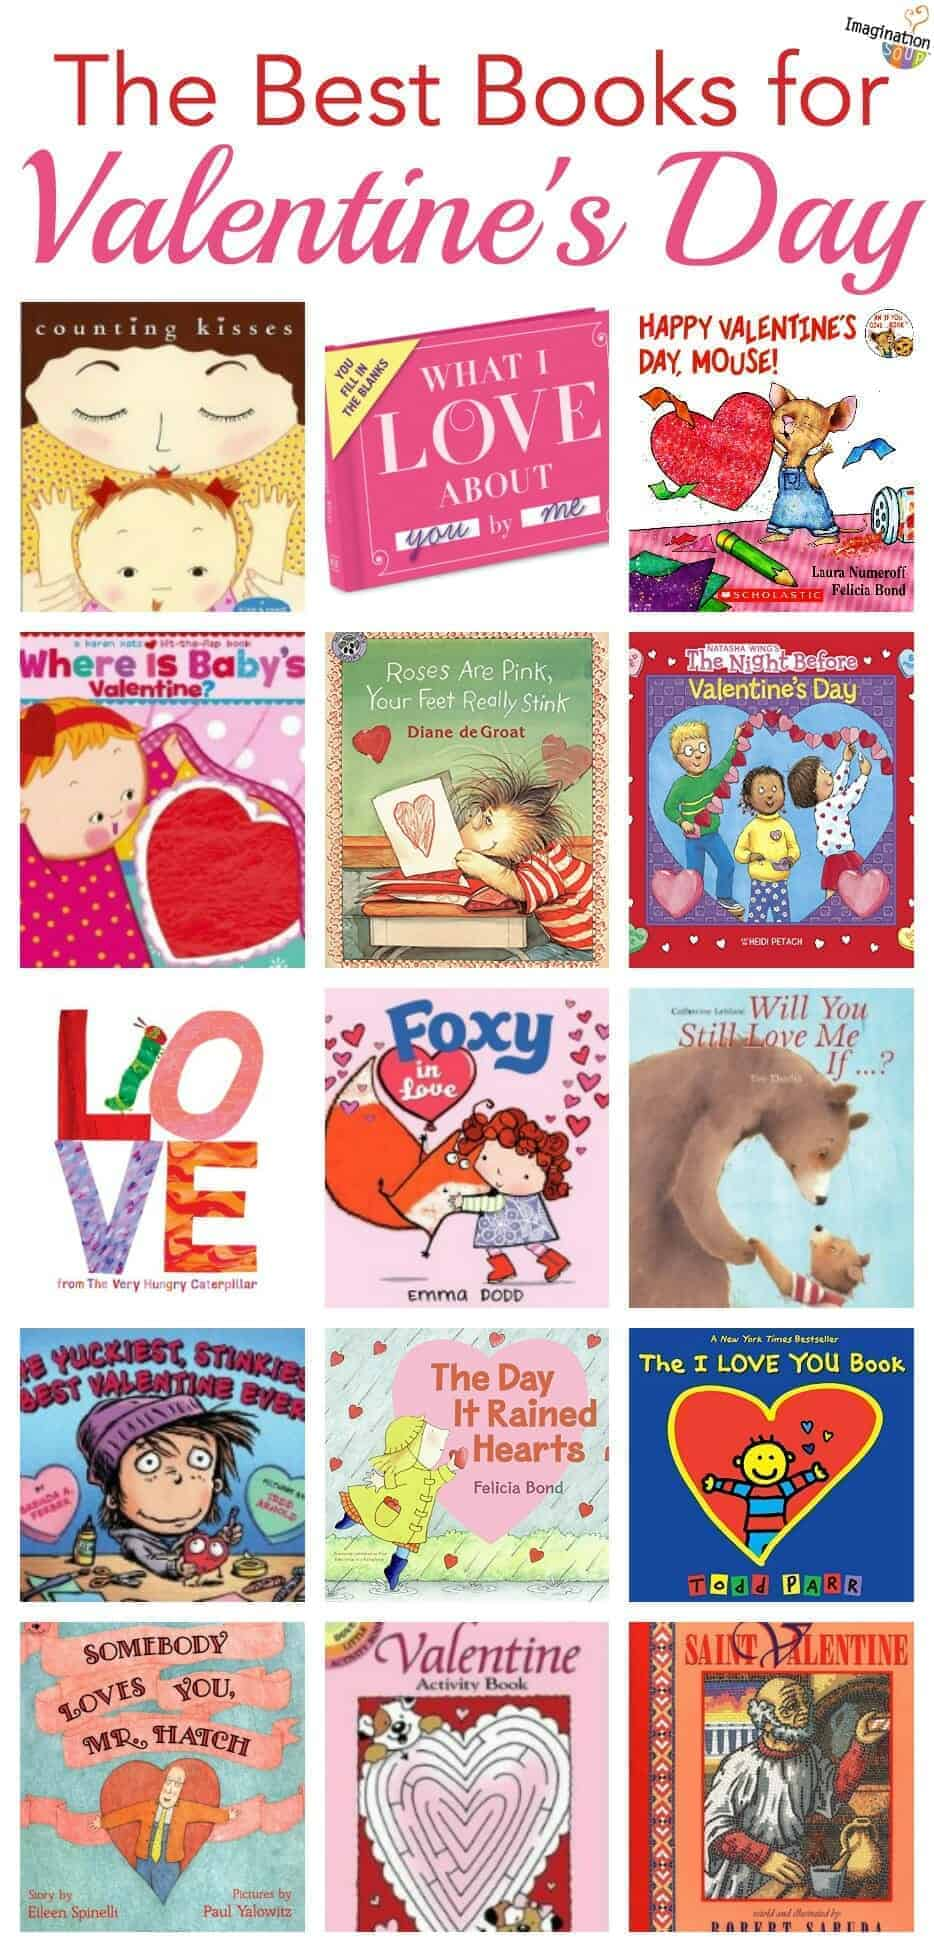 the best children's books for Valentine's Day - huge list